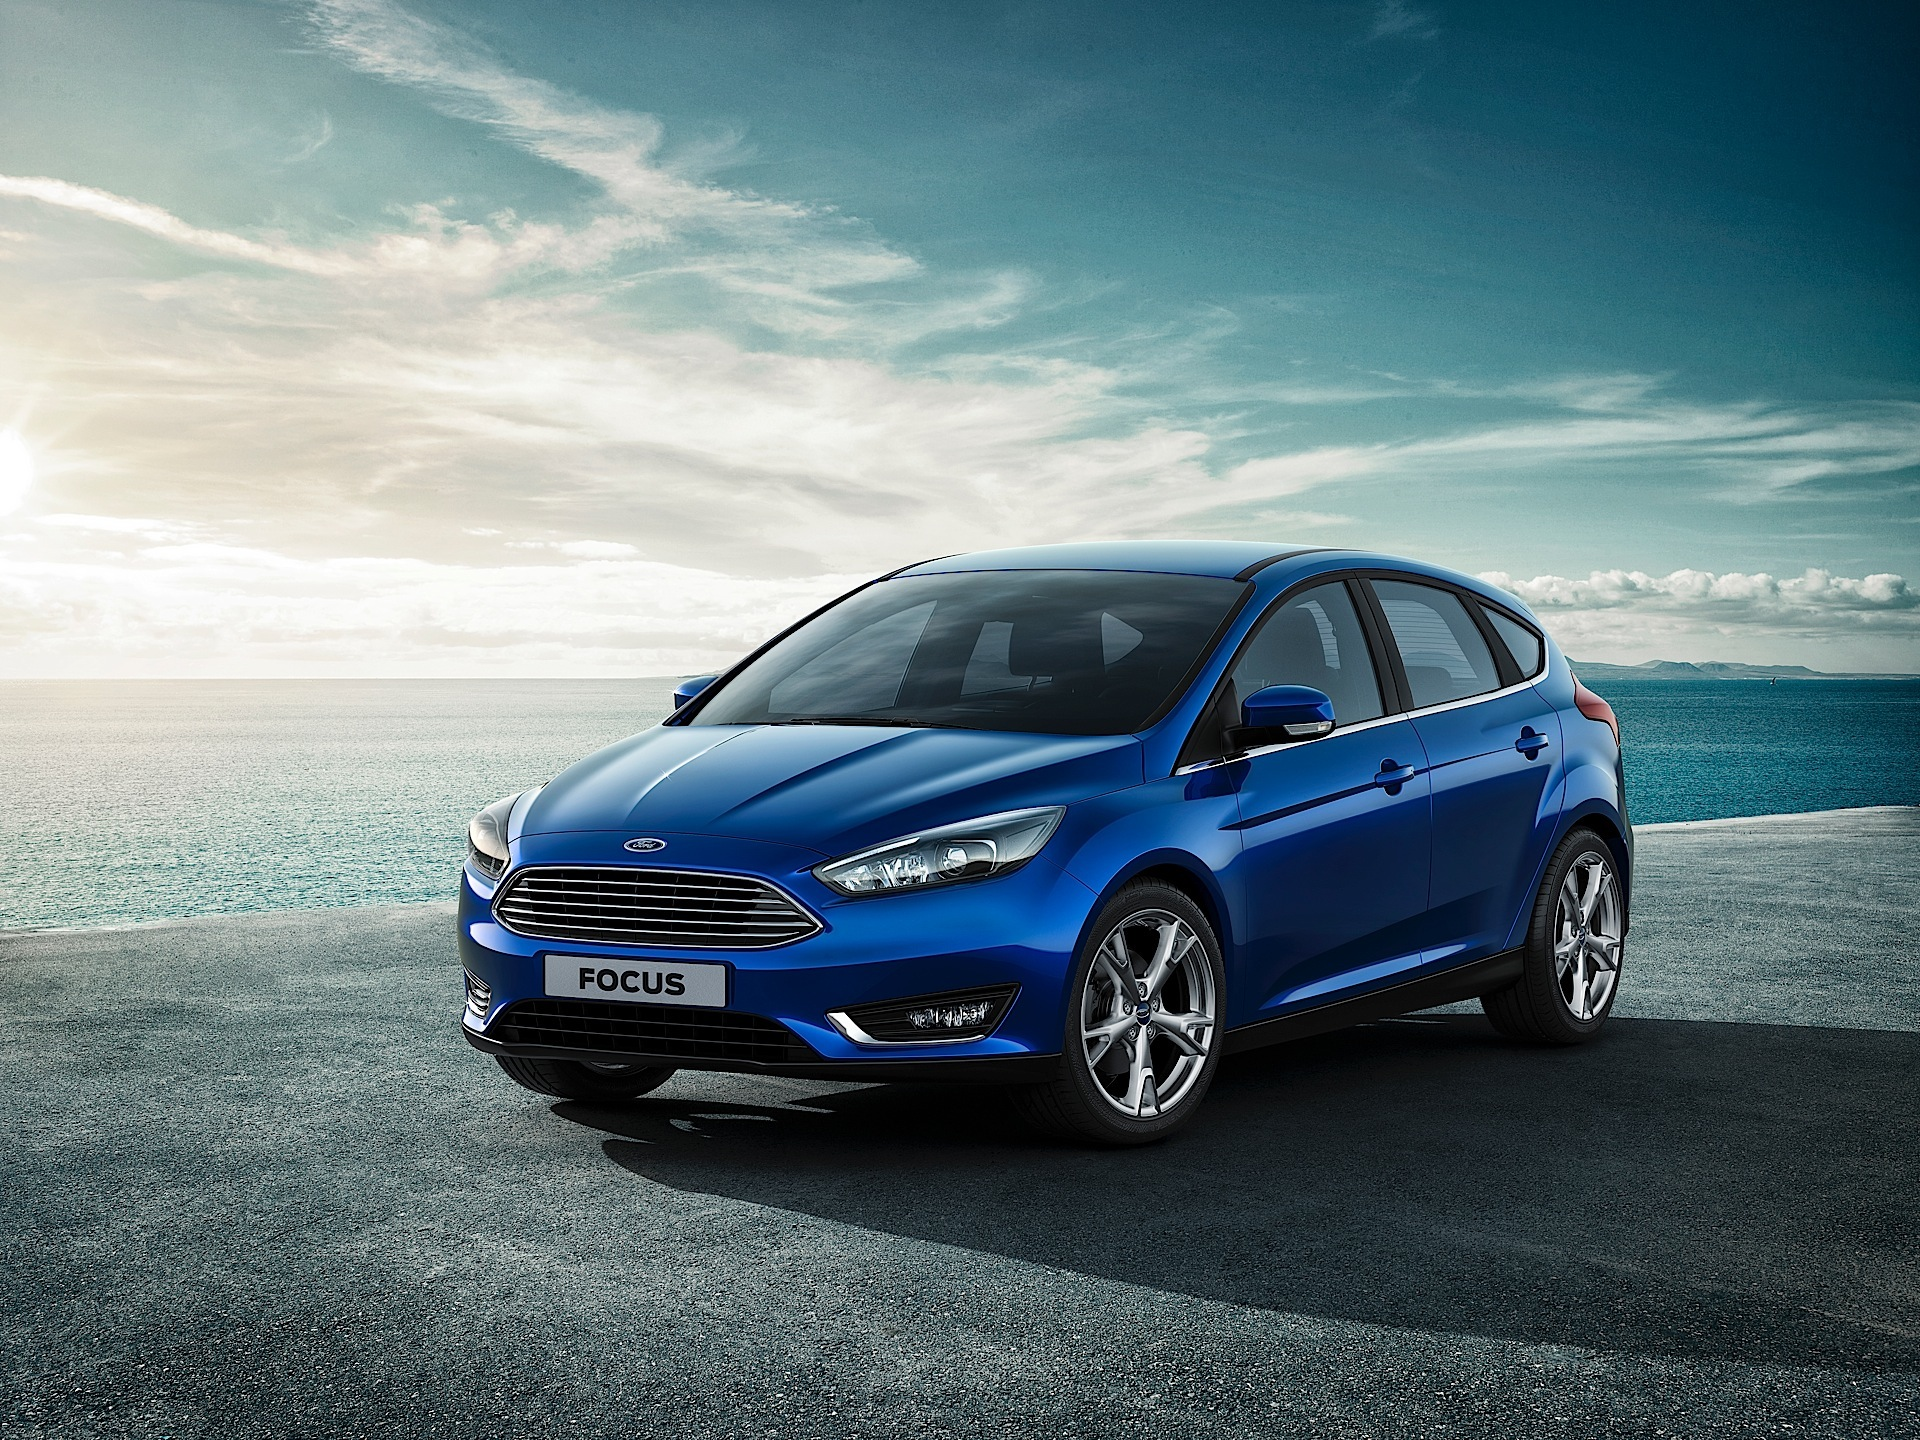 ford focus 5 doors specs 2014 2015 2016 2017 2018 autoevolution. Black Bedroom Furniture Sets. Home Design Ideas